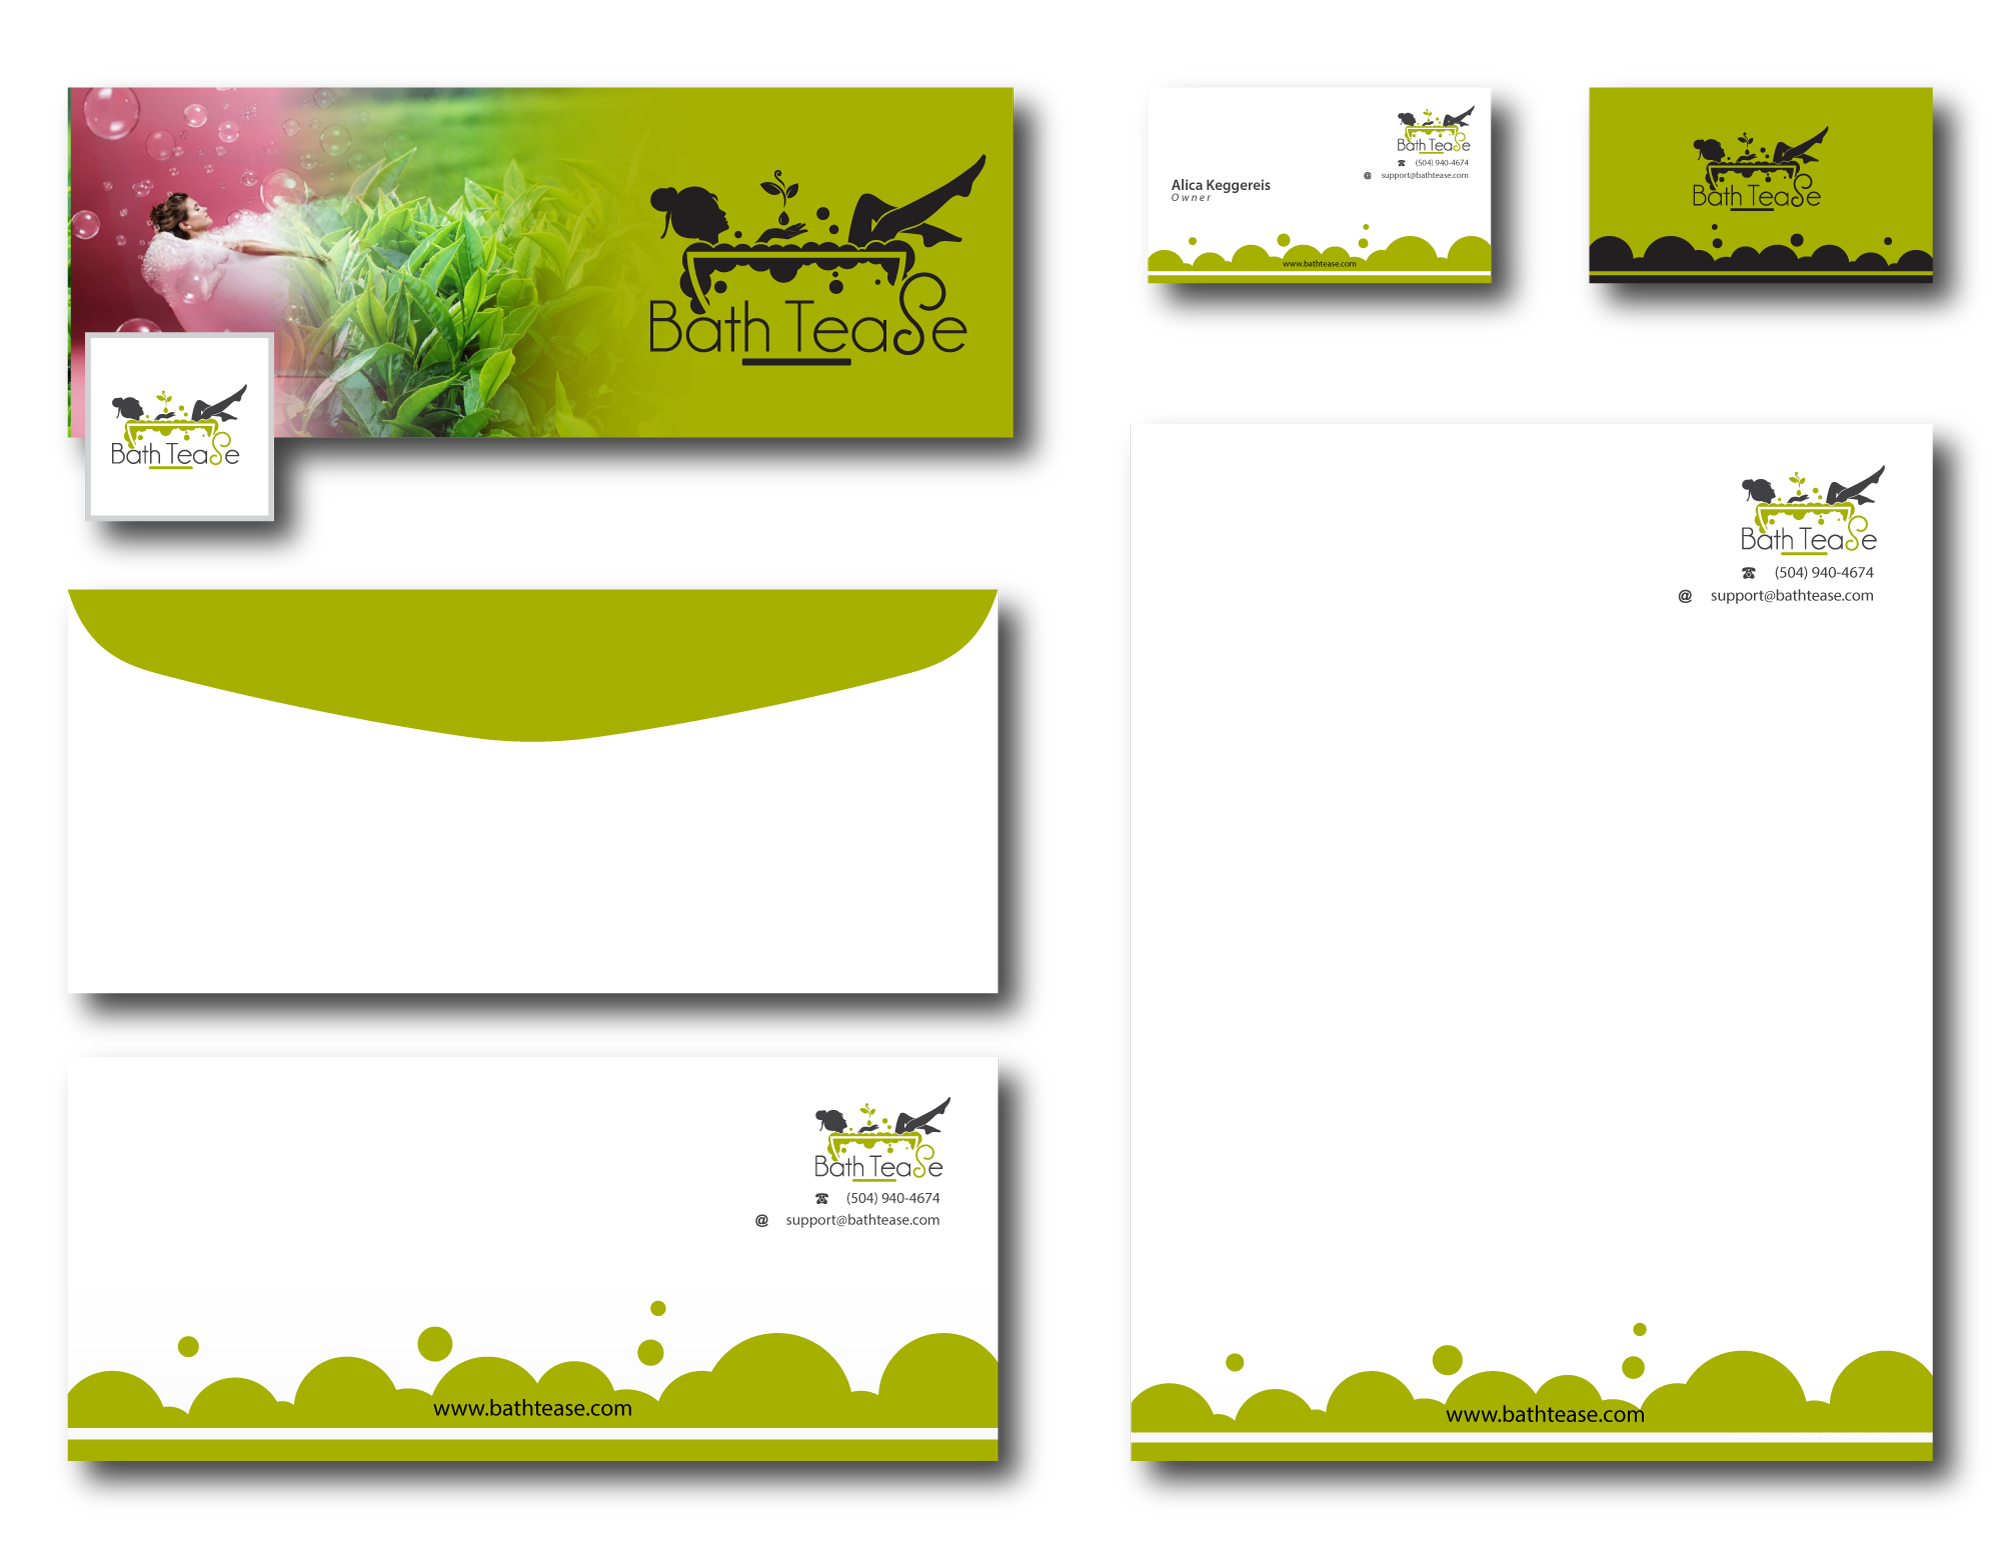 Create a Brand Identity Pack for new start up Bath Tease